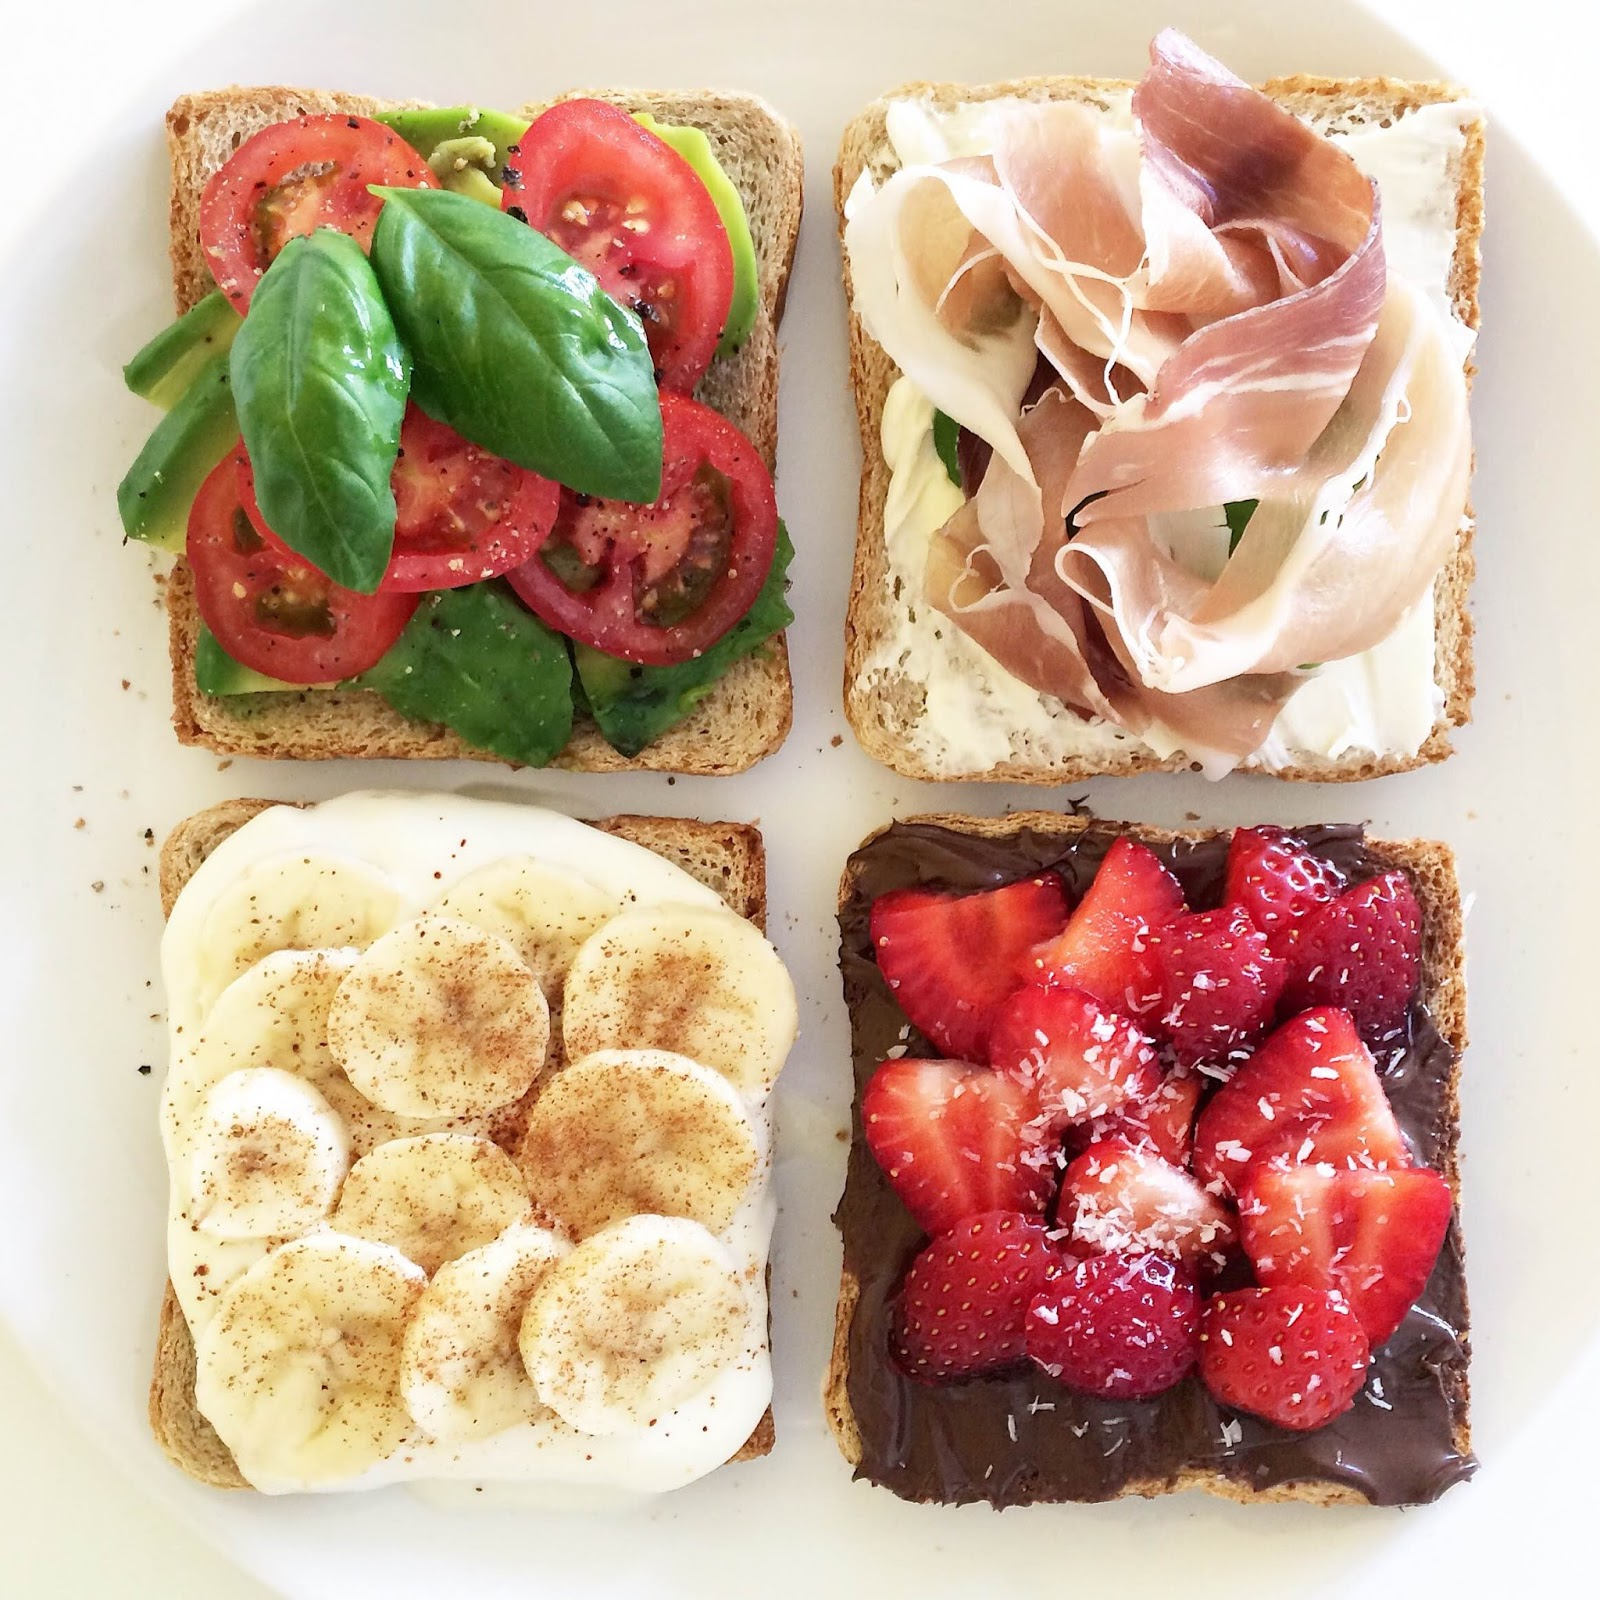 kristjaana mere healthy breakfast toast ideas banana peanut butter strawberry prosciutto avocado